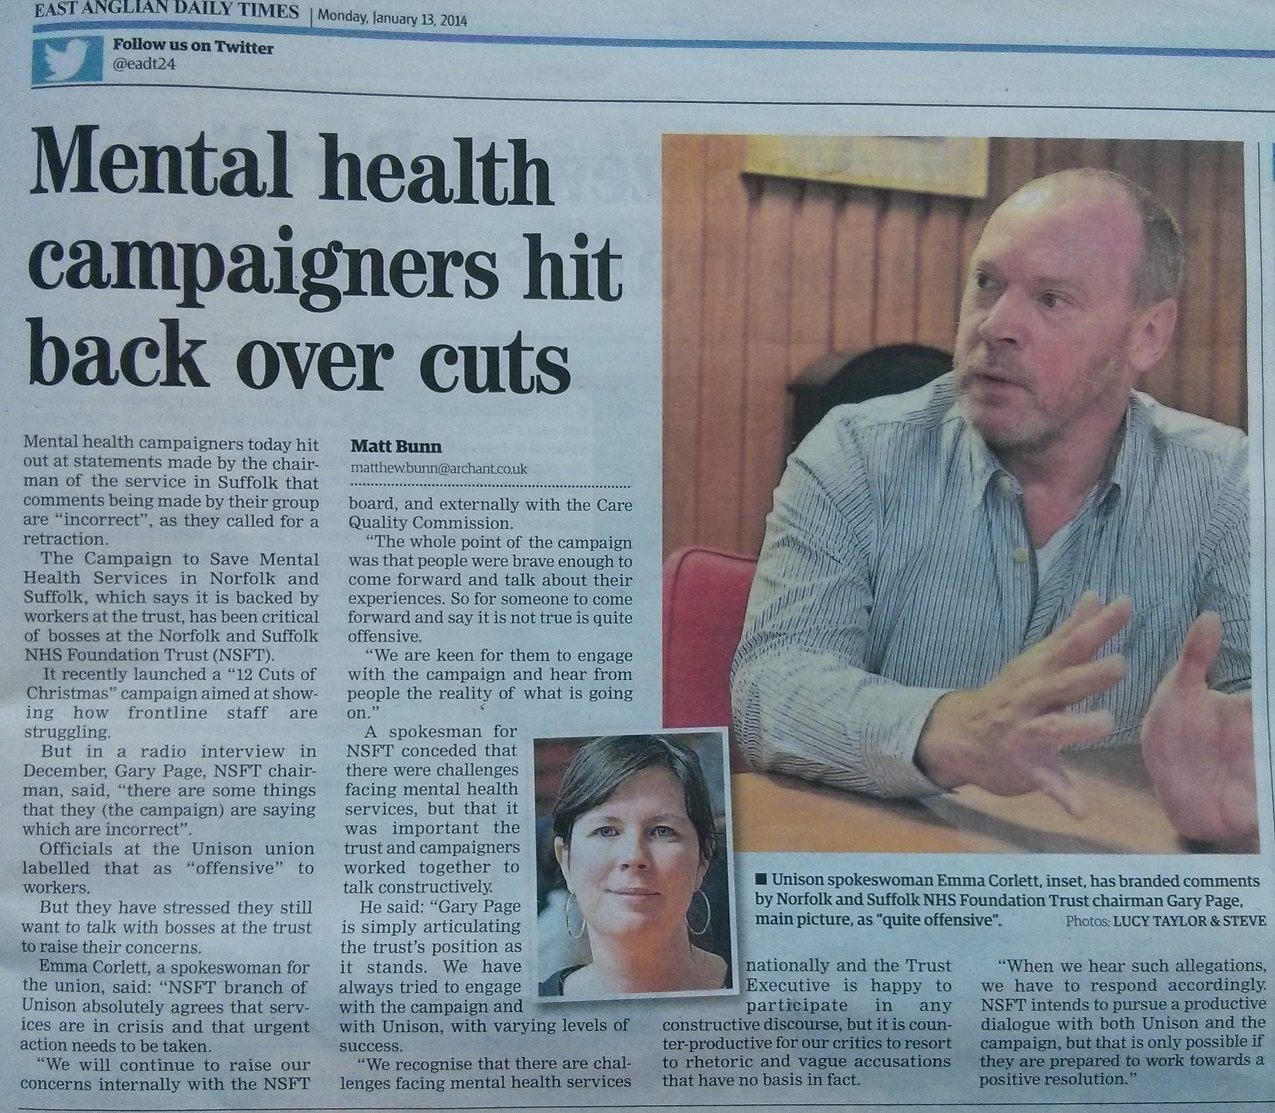 EADT Mental health campaigners hit back over cuts